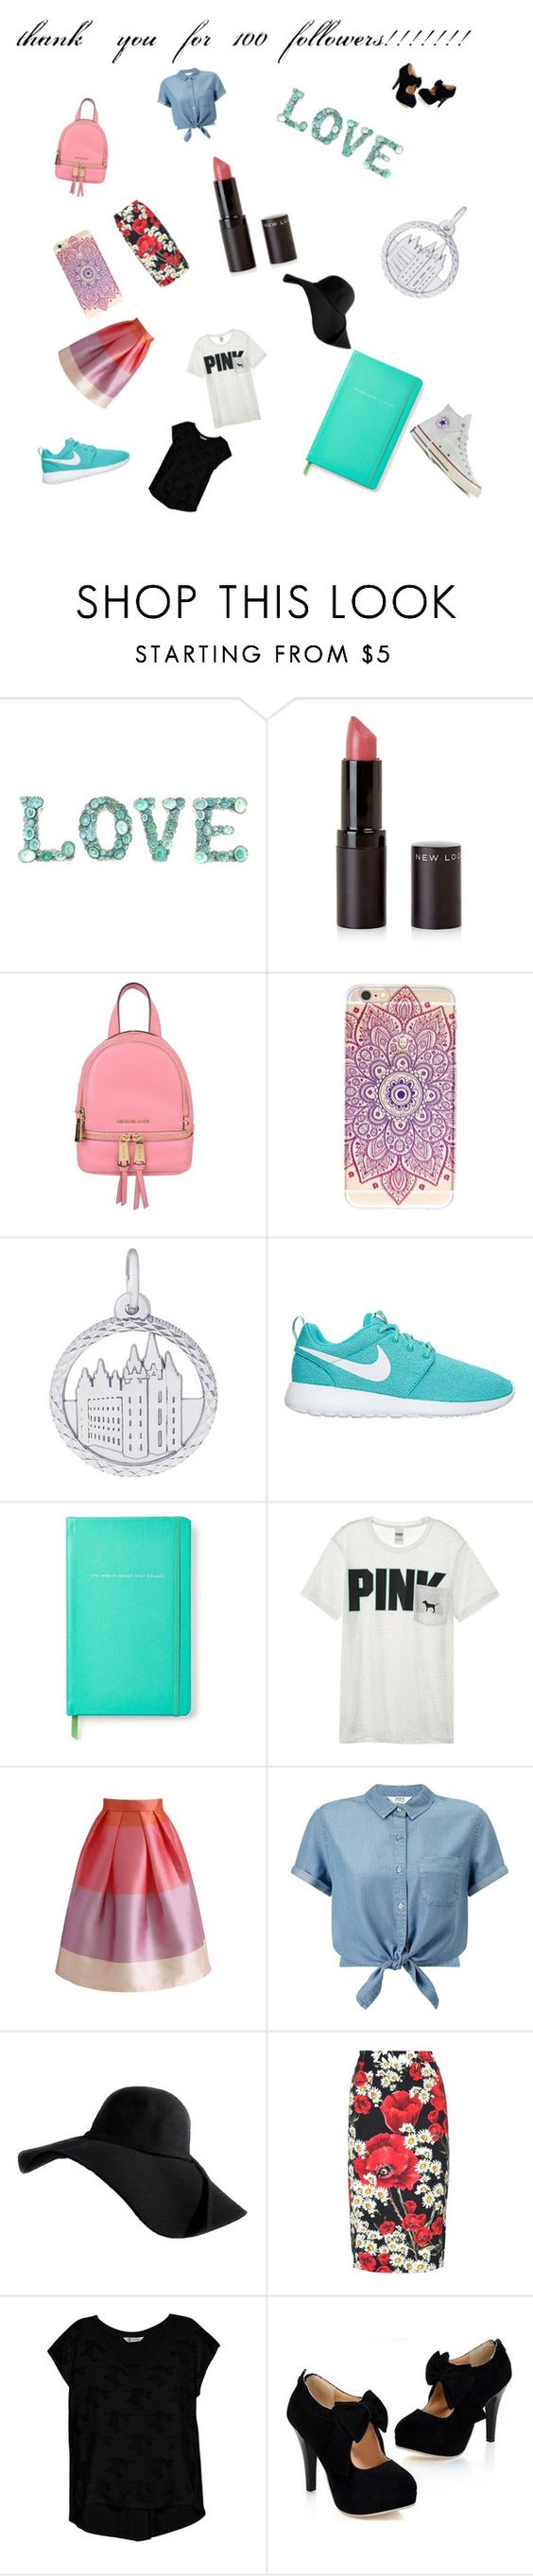 """thank you so much"" by l0l023 ❤ liked on Polyvore featuring New Look, MICHAEL Michael Kors, Rembrandt Charms, Kate Spade, Victoria's Secret, Chicwish, Miss Selfridge, Dolce&Gabbana, Bobeau and Converse"